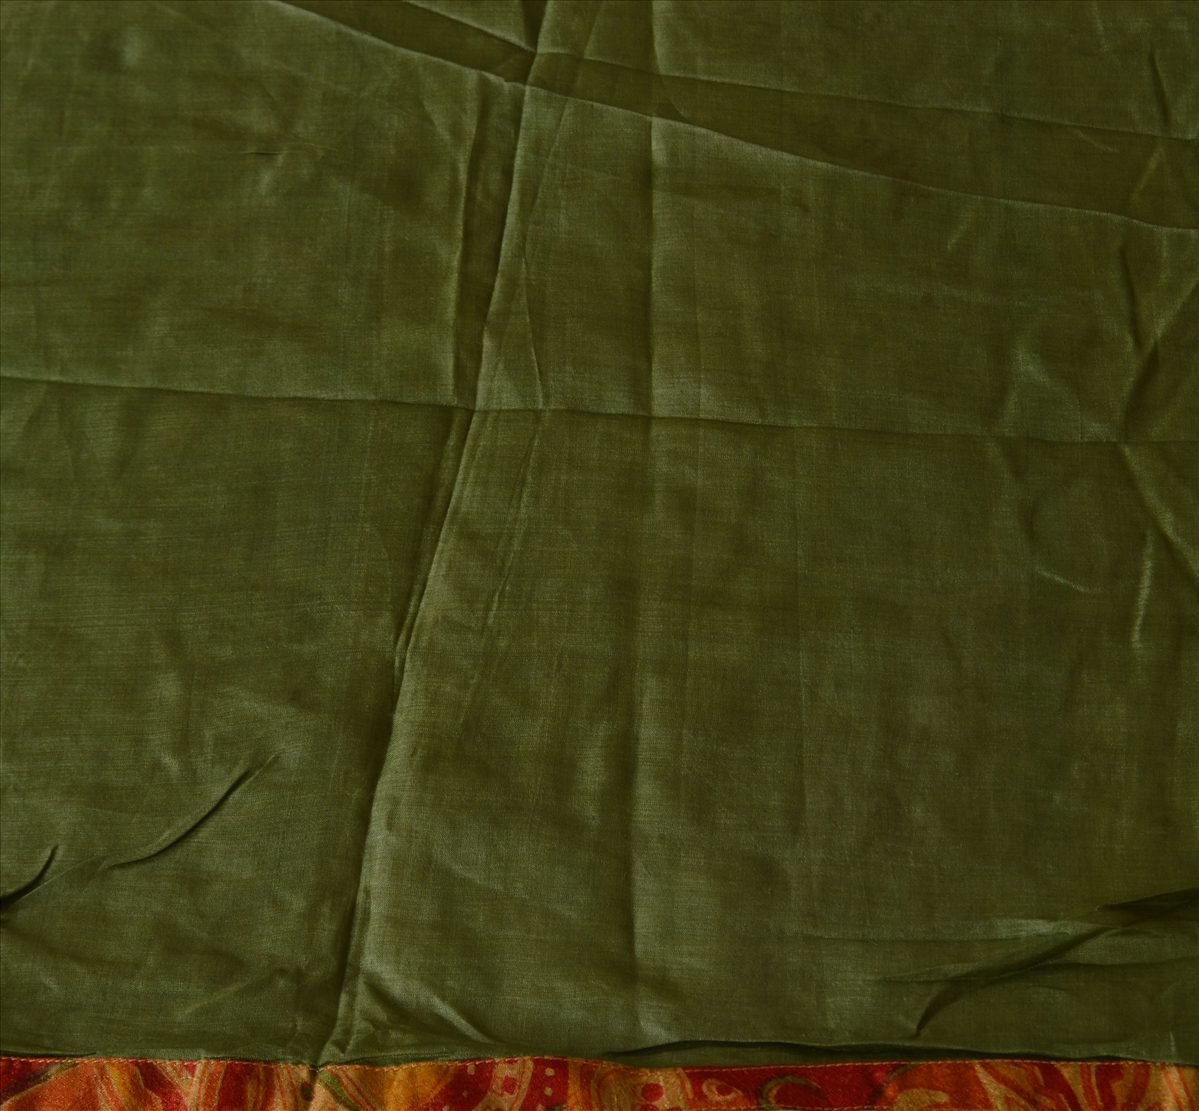 Sanskriti vintage dupatta long stole pure silk green for Joot work